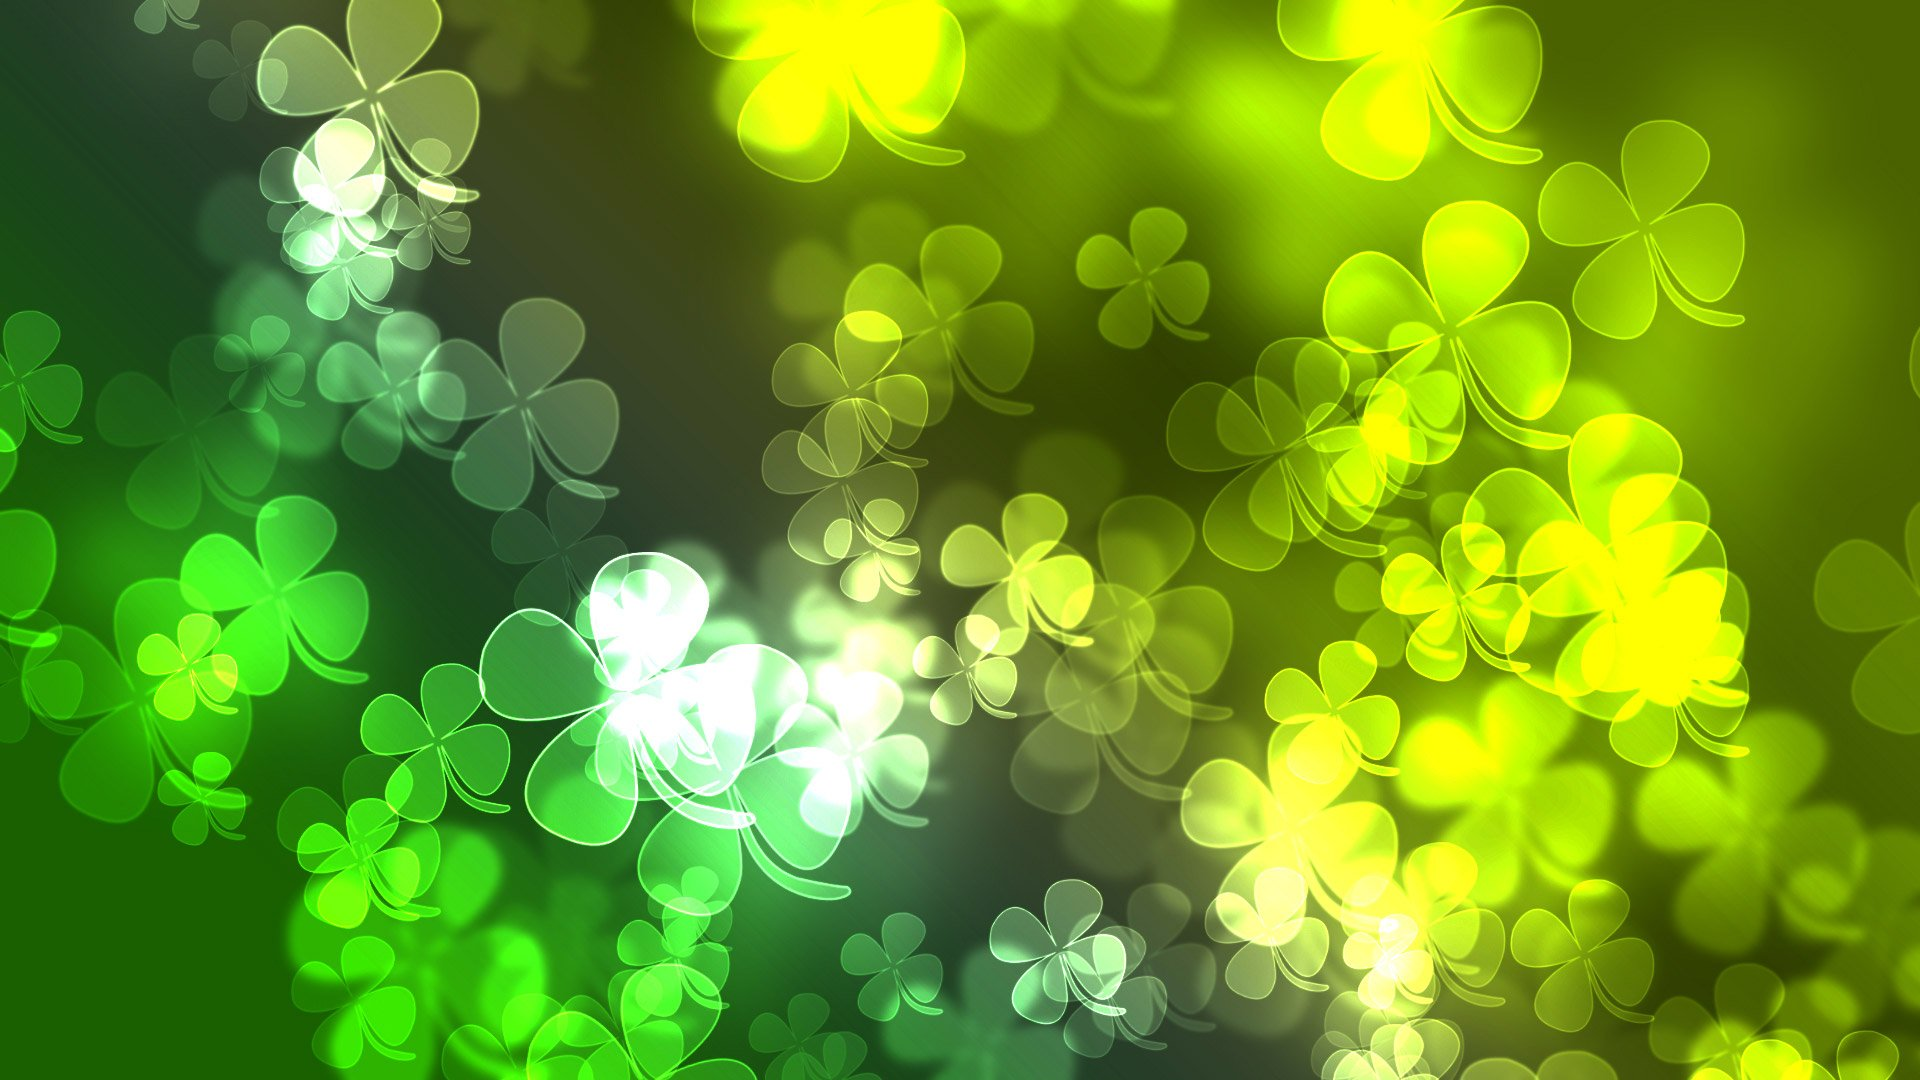 patricks day shamrock background-#16